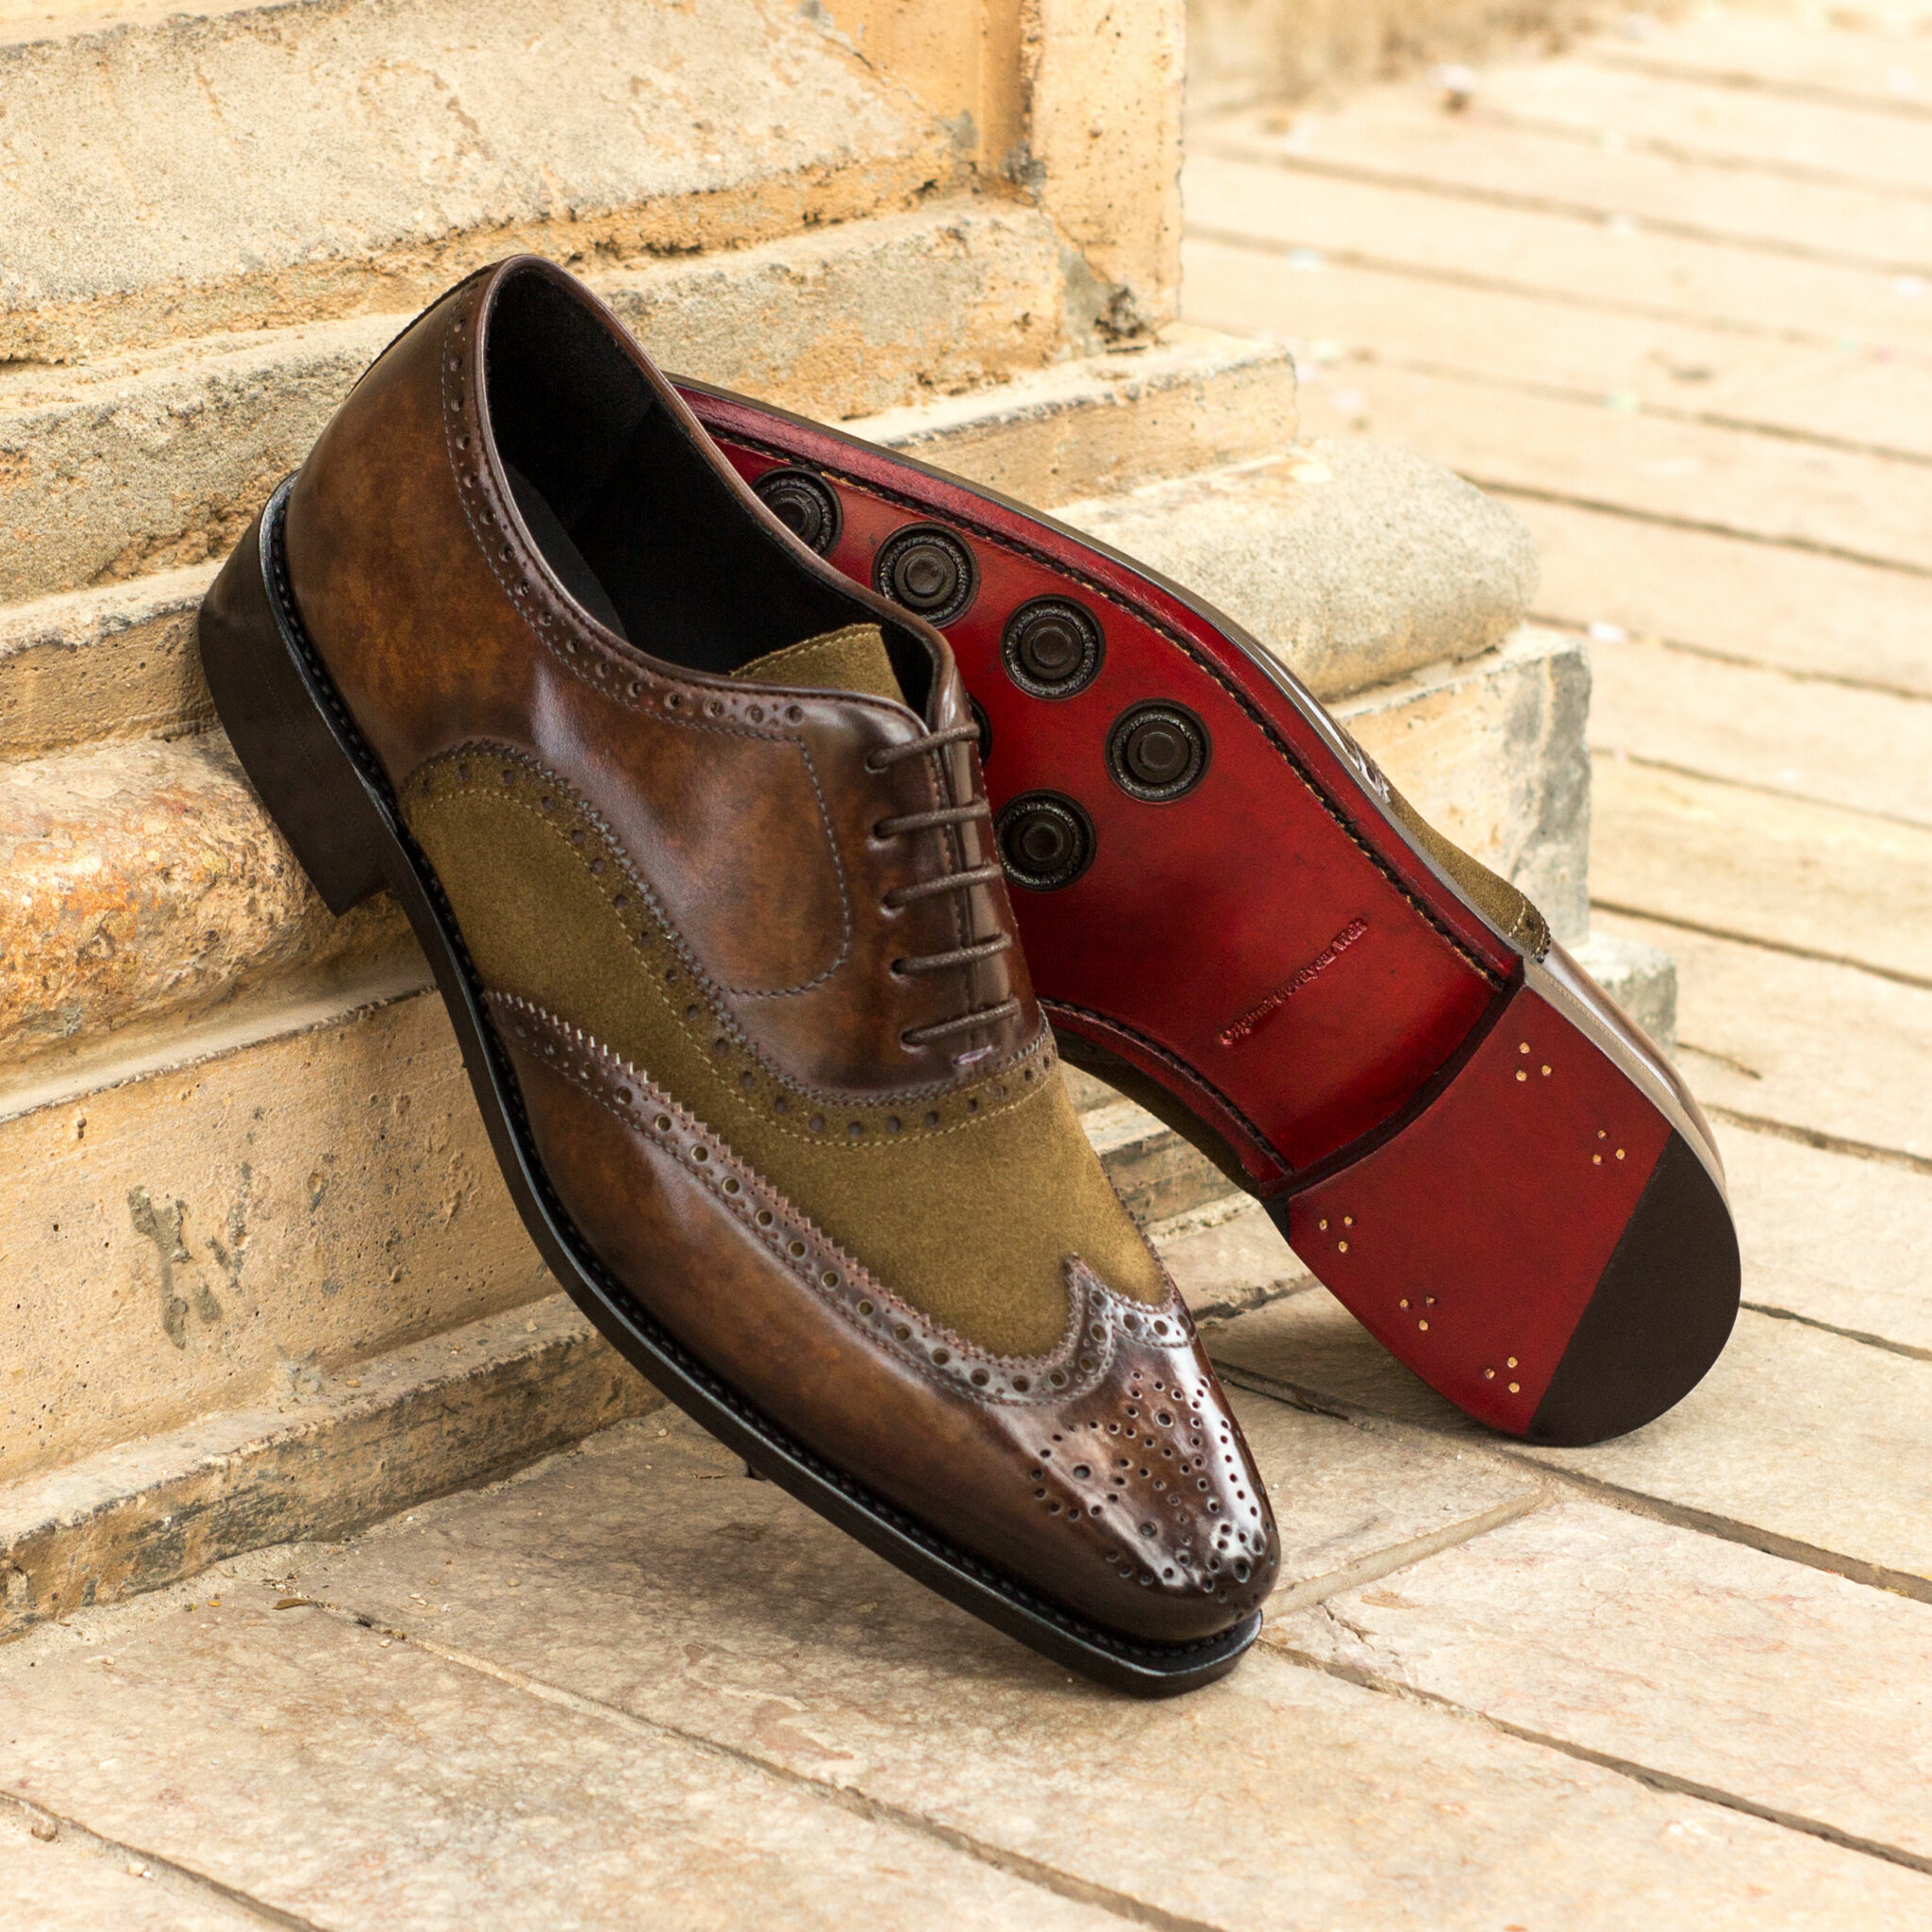 Full brogue khaki lux suede + denim crust patina + brown crust patina : 340€